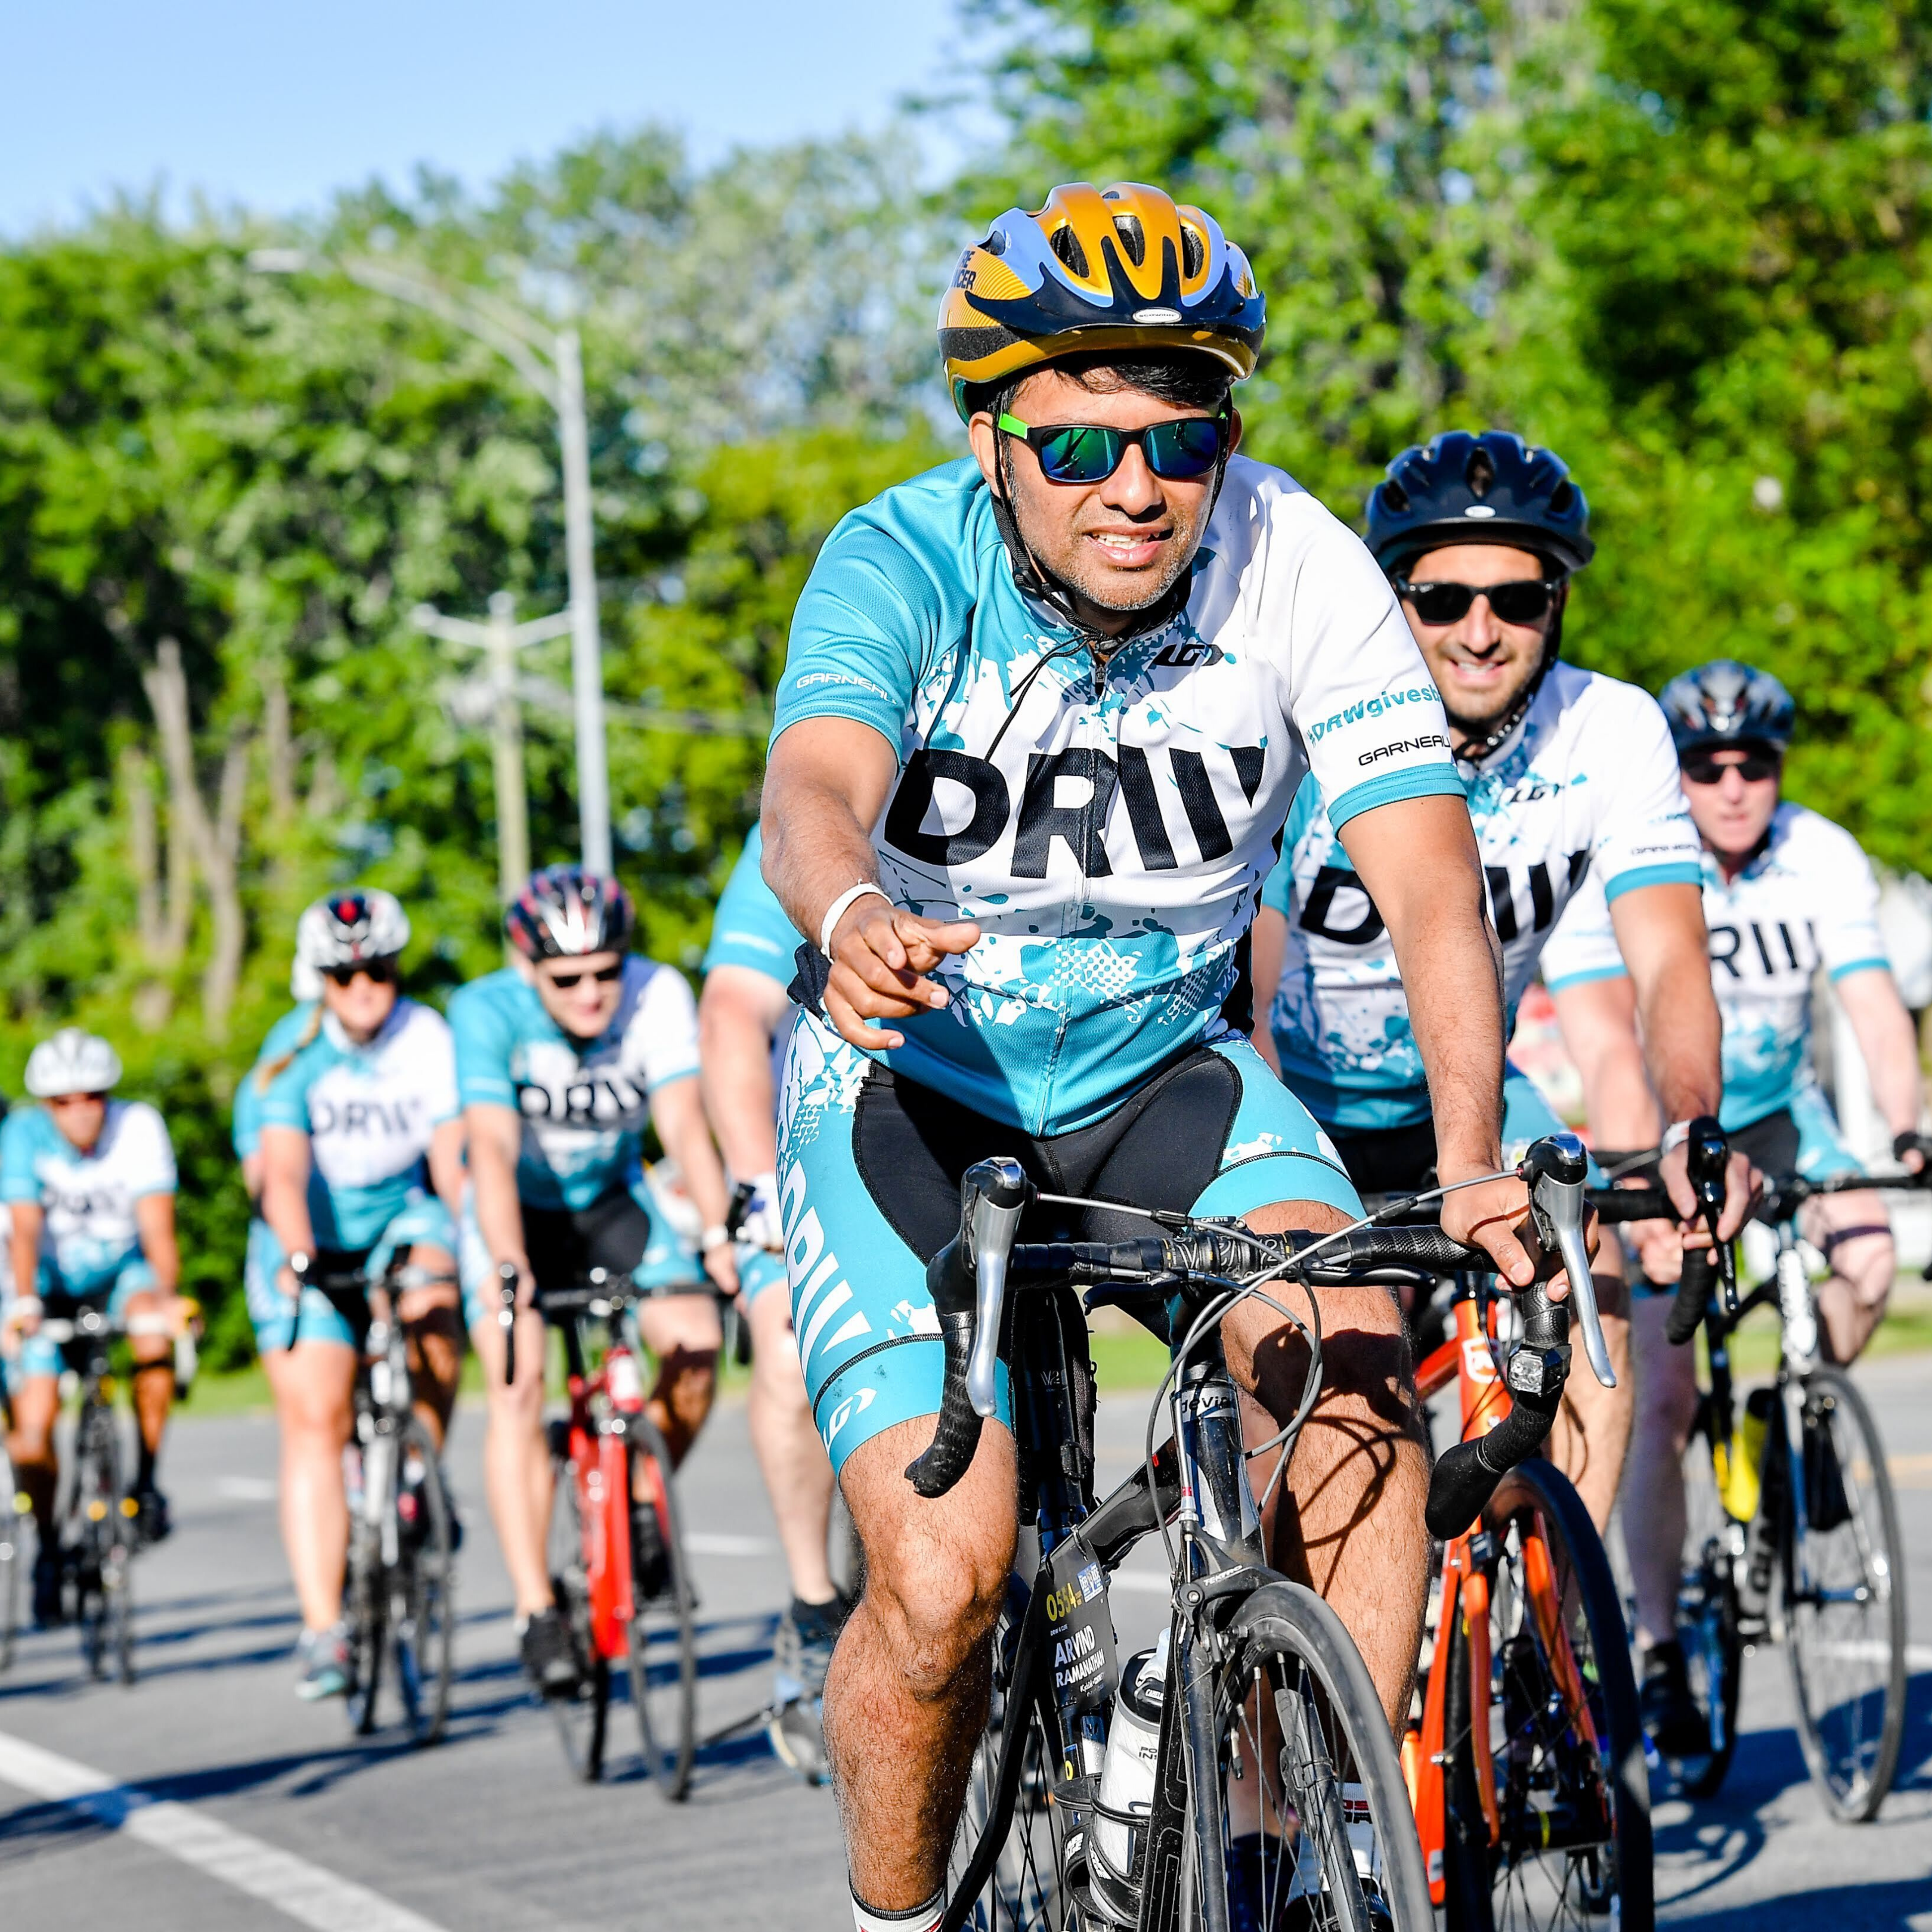 Participating in Ride to Conquer Cancer